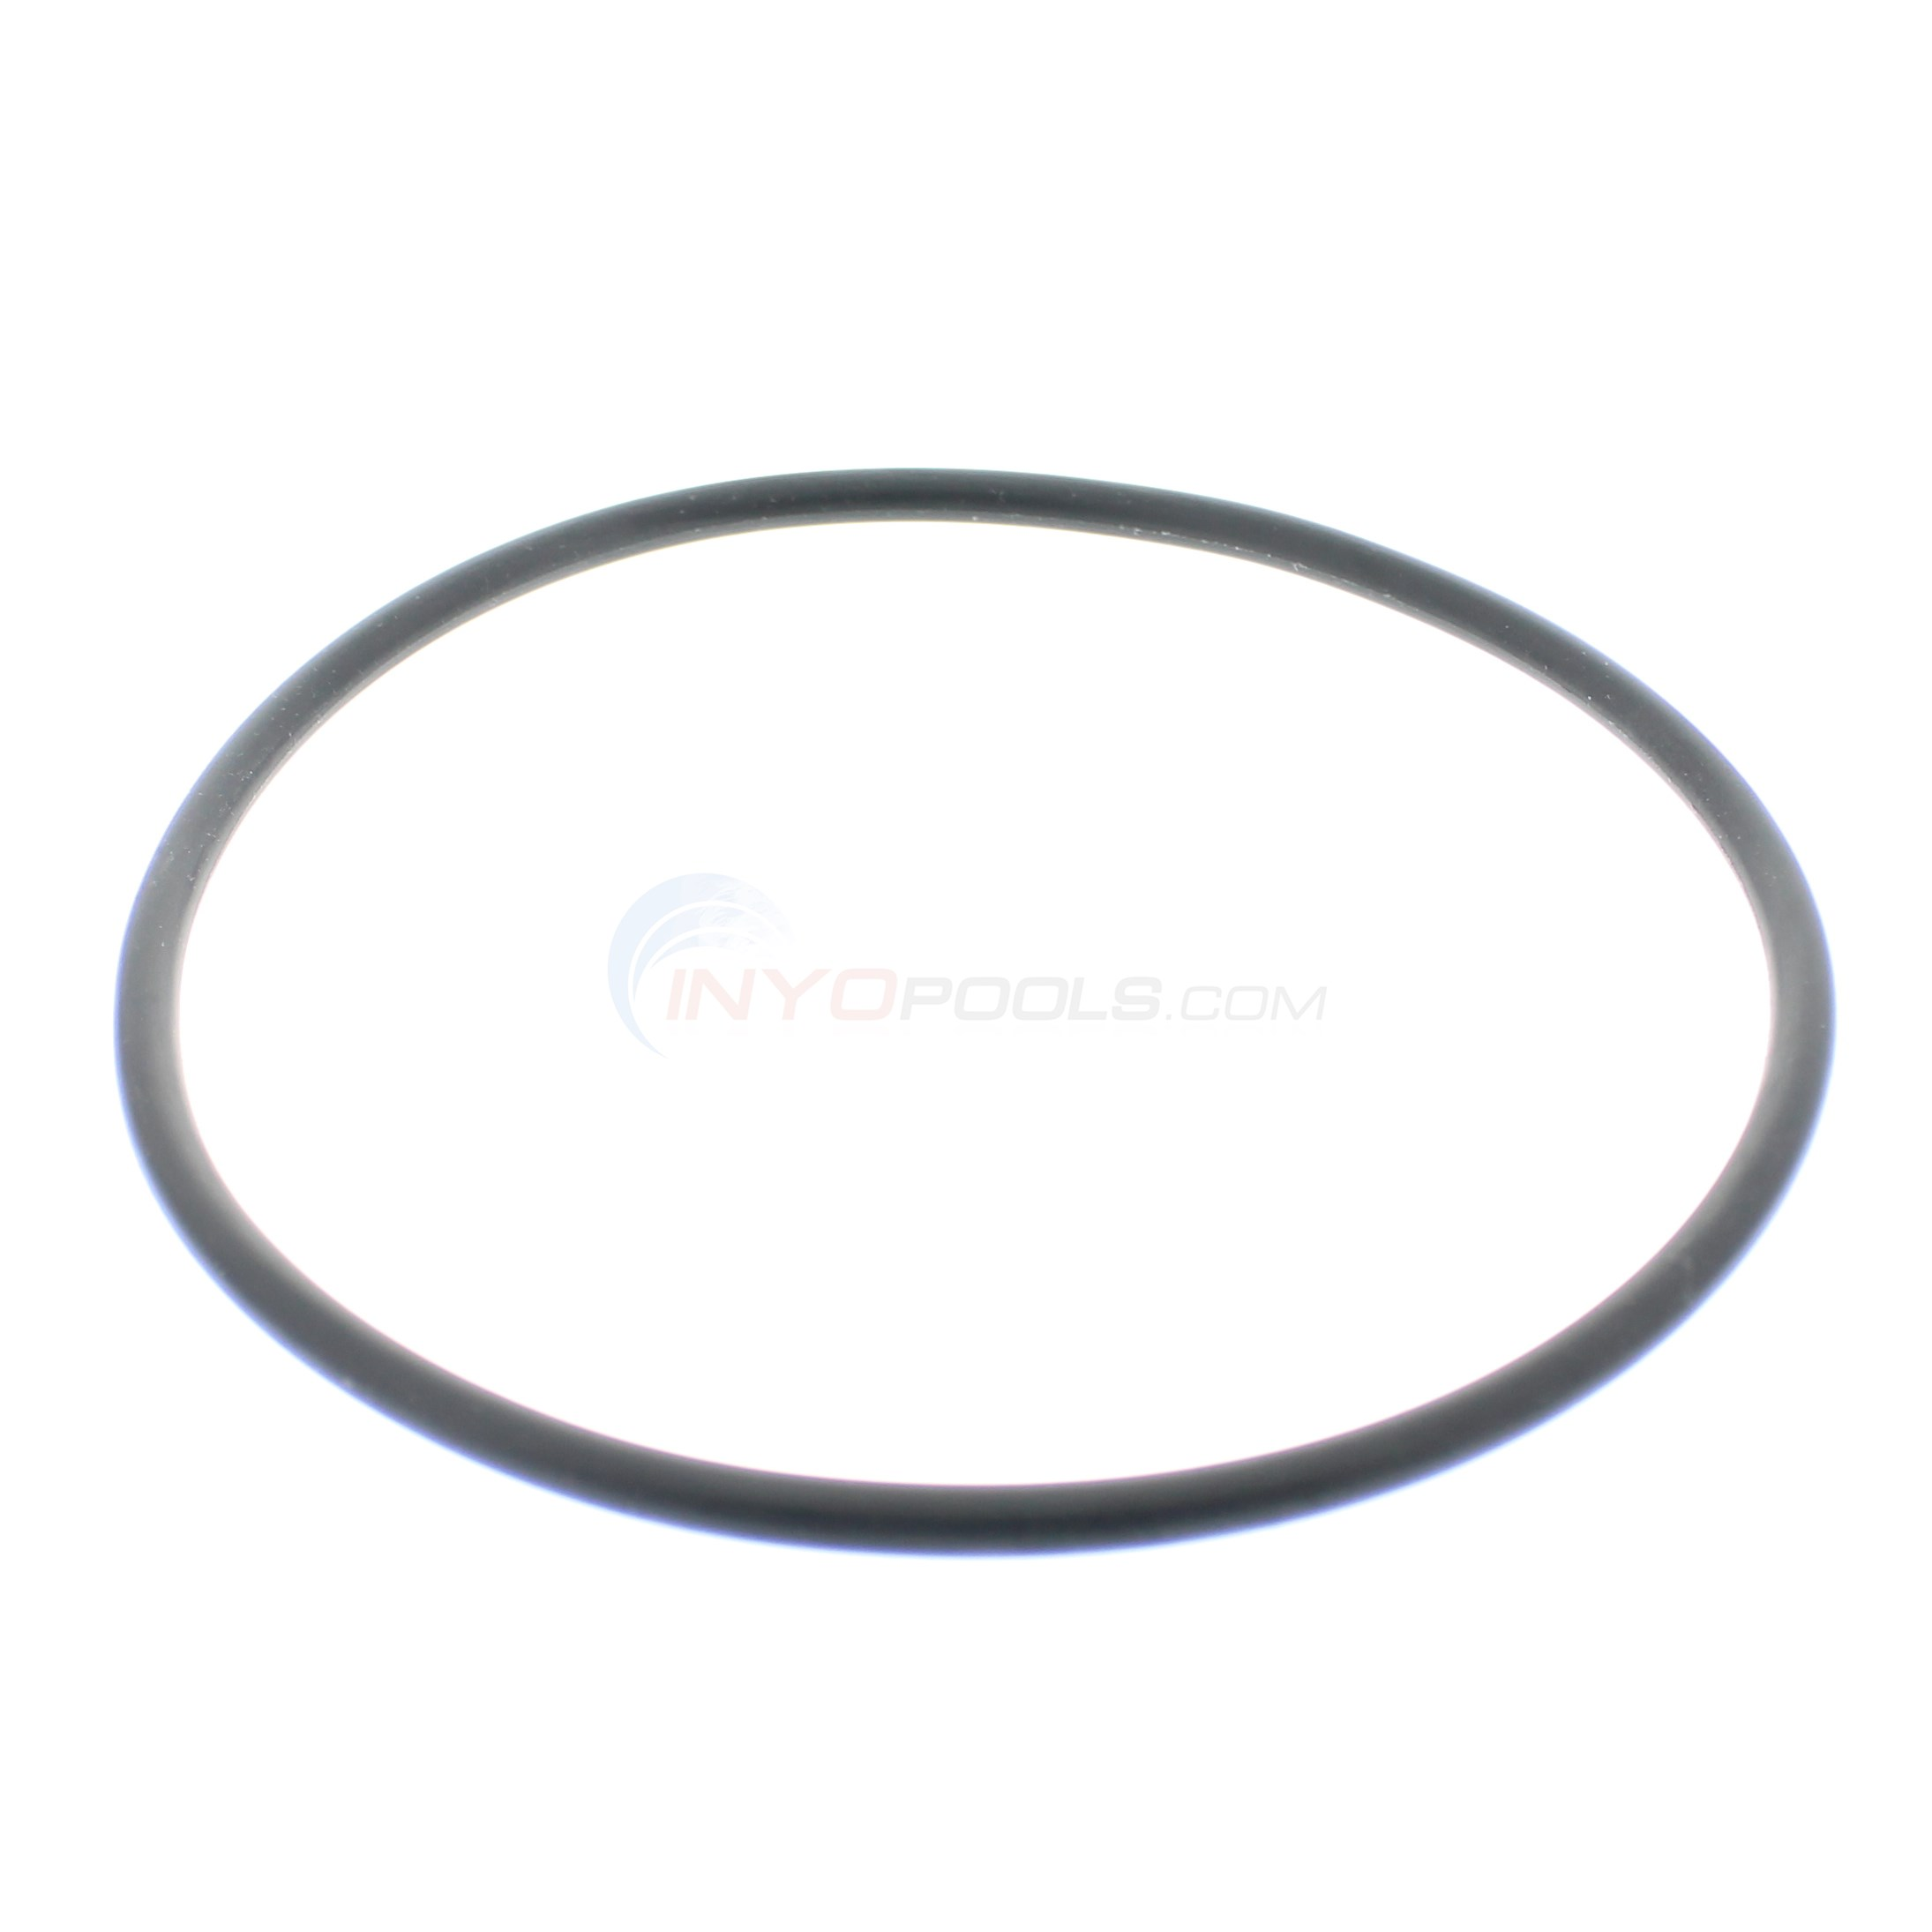 CHEMICAL RESISTANT PUMP LID